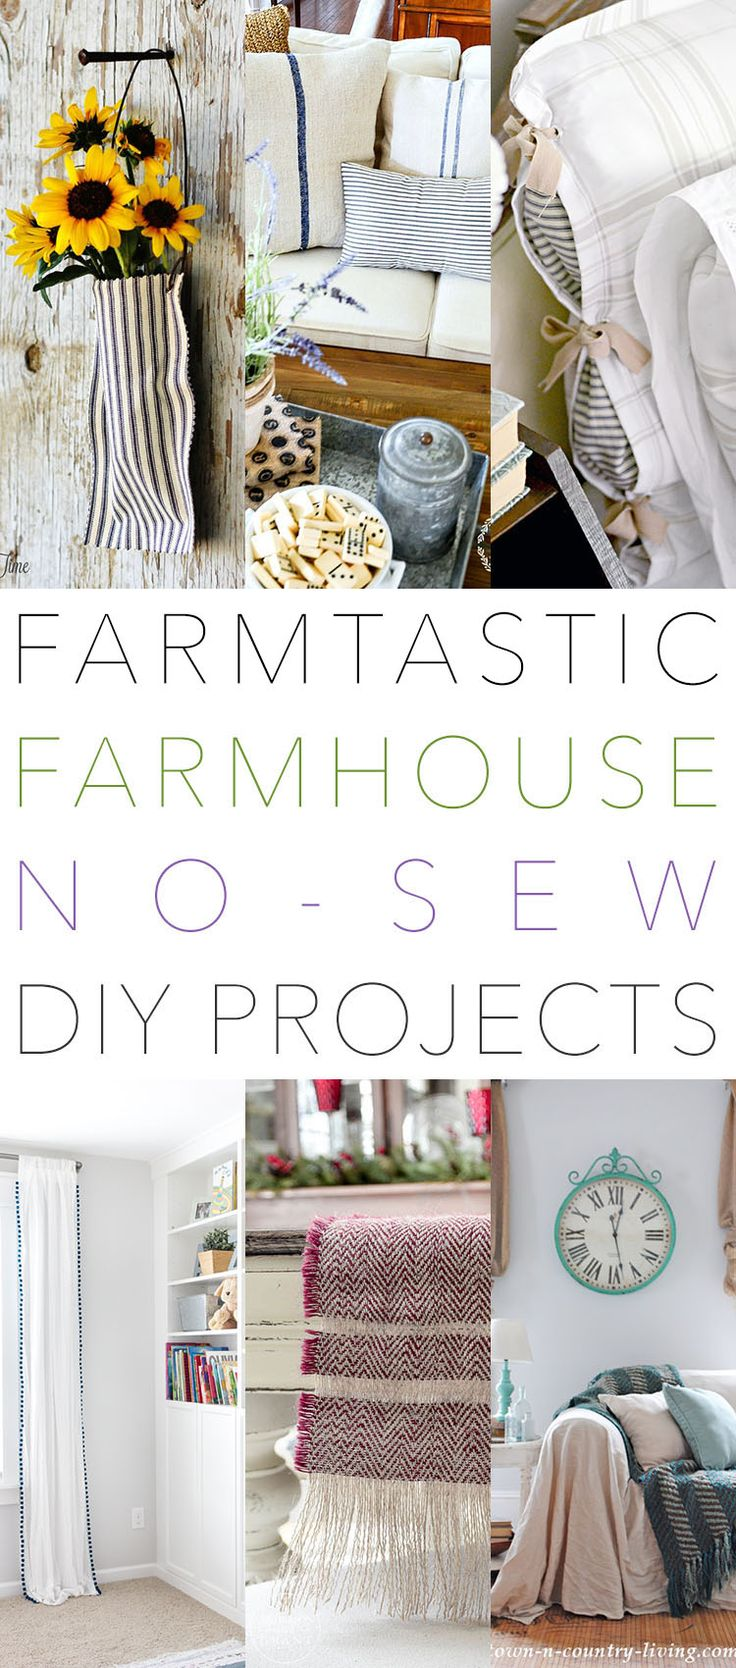 Farmtastic Farmhouse No Sew DIY Projects You Need To Make! | The Cottage Market | Bloglovin'